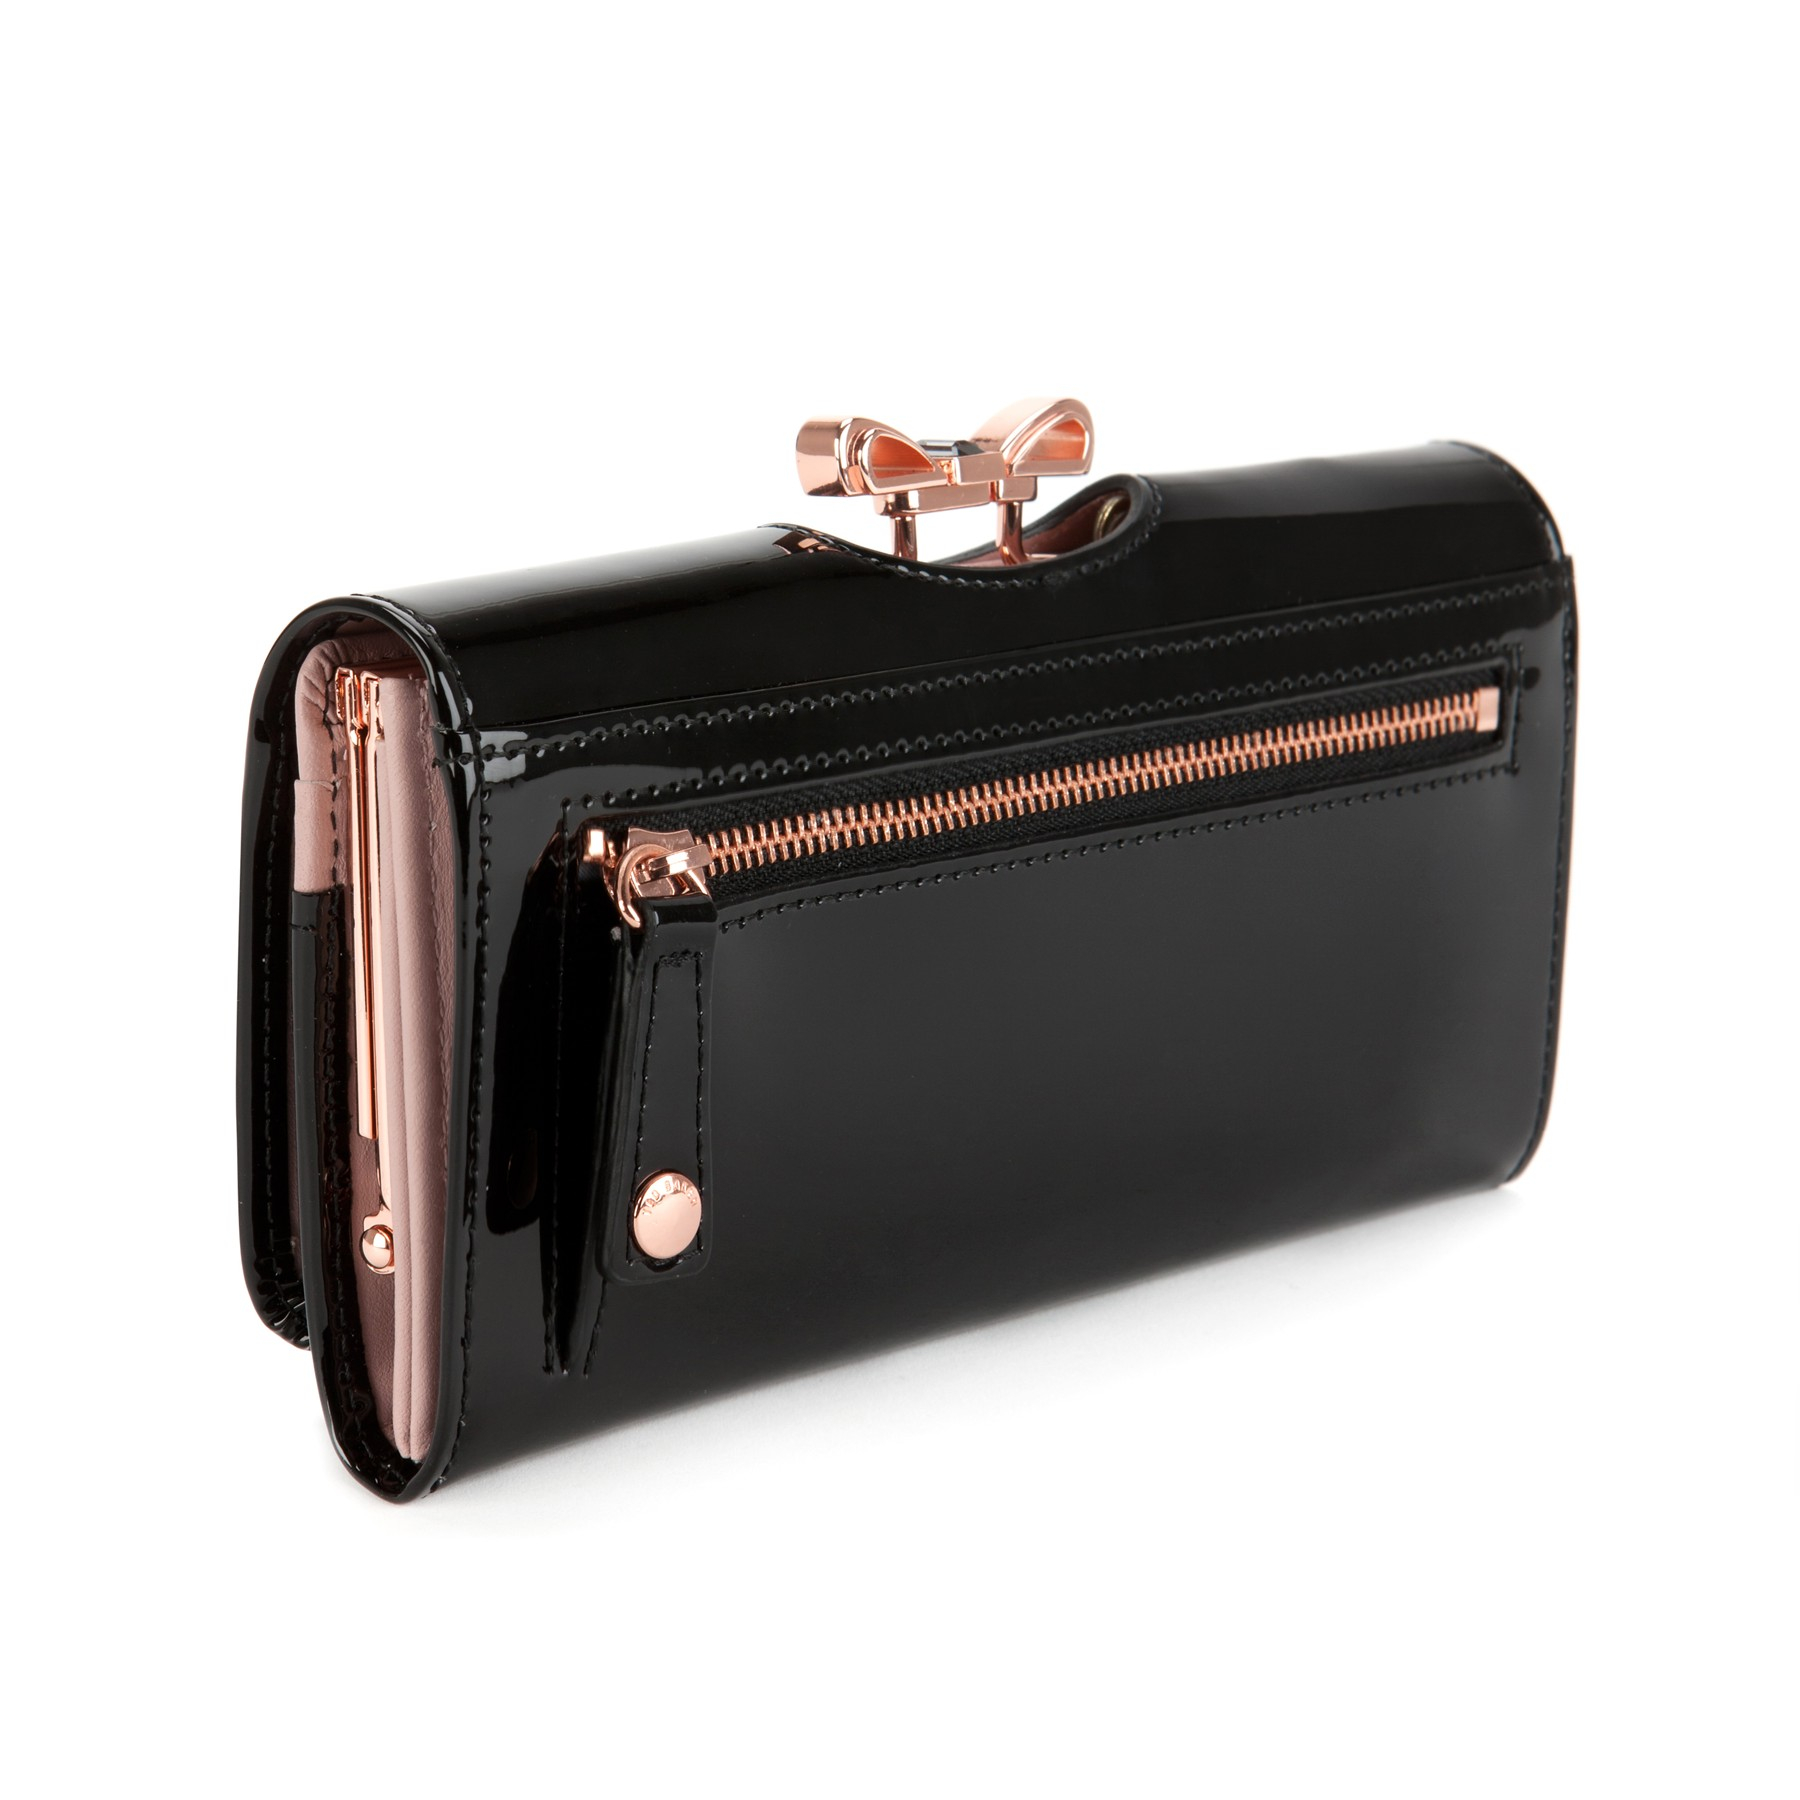 d1f45b4f06bd83 Ted Baker Emmy Small Leather Crystal Bow Purse - Best Purse Image ...